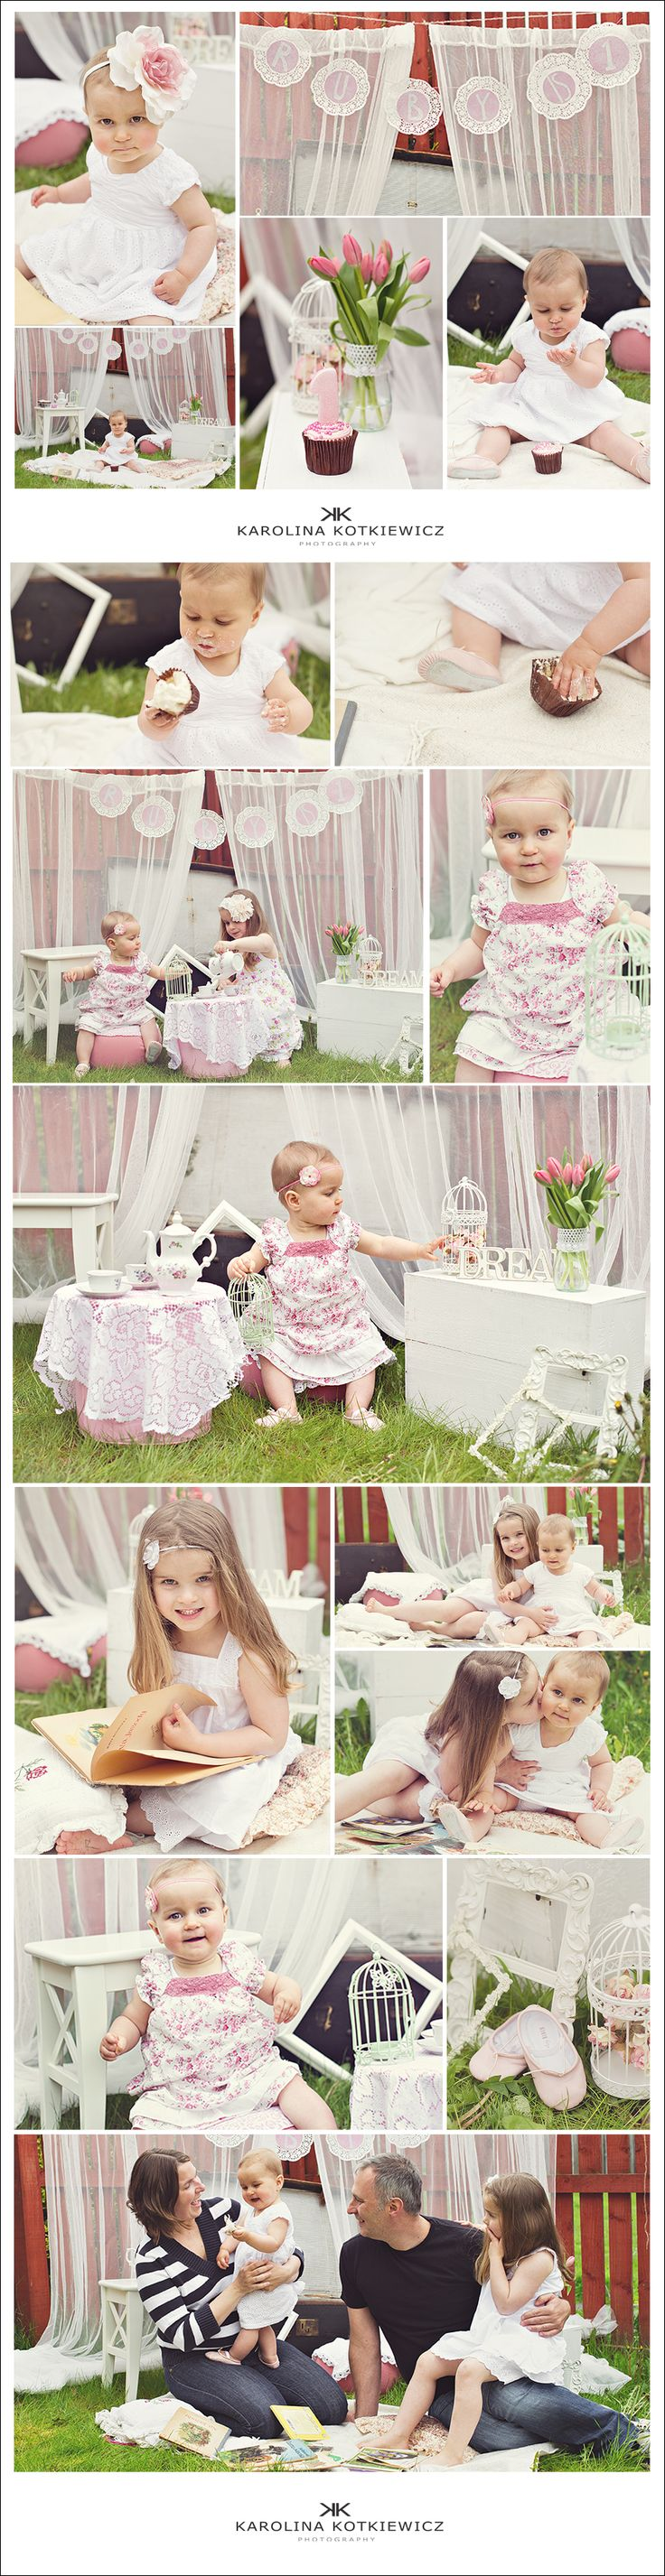 1st birthday baby photo session, children ideas, birthday party ideas ...